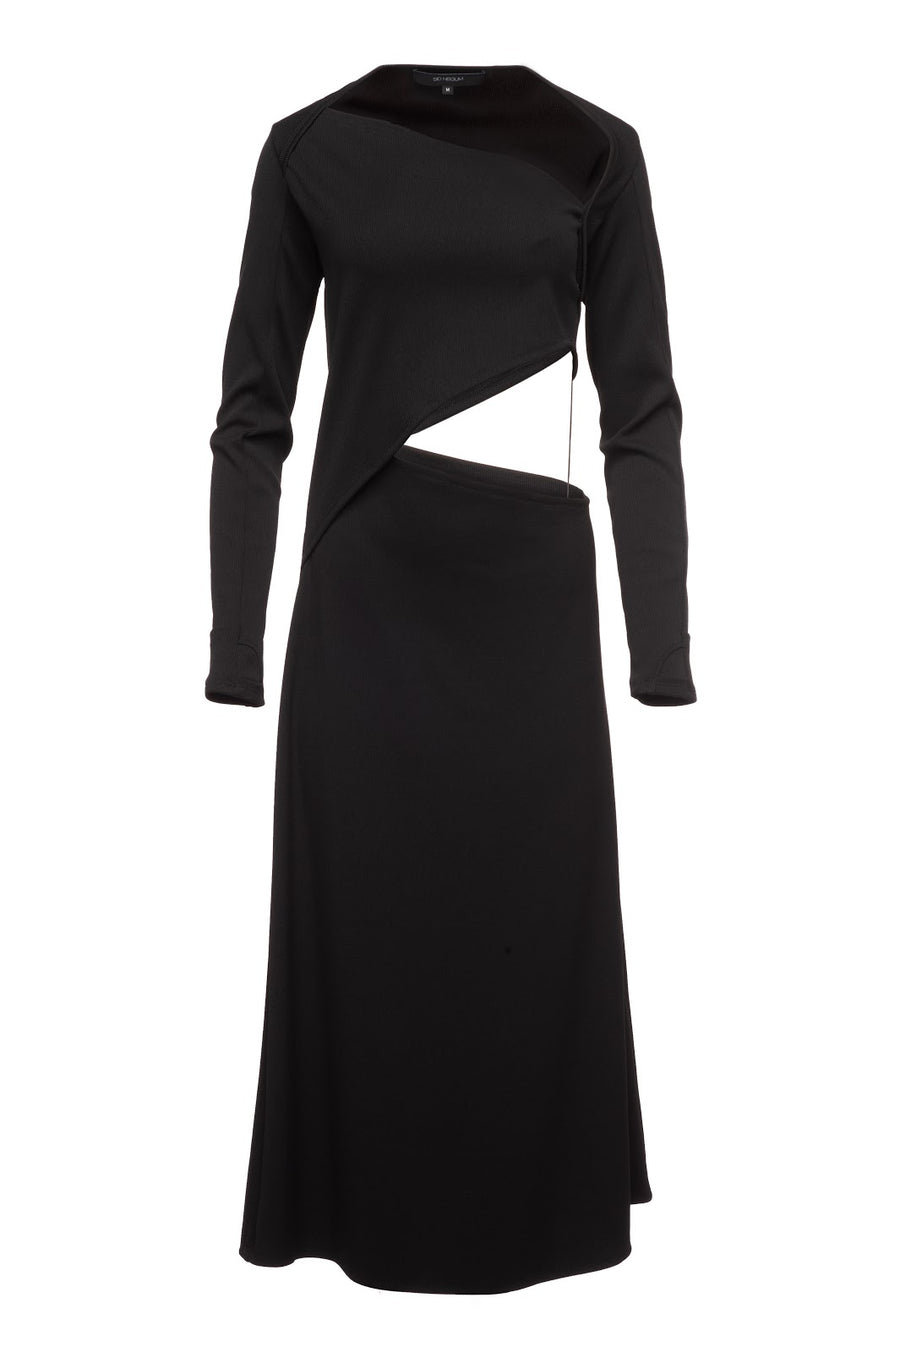 Asymmetrical Rib Knit Cut Out Dress Sid Neigum Off Figure